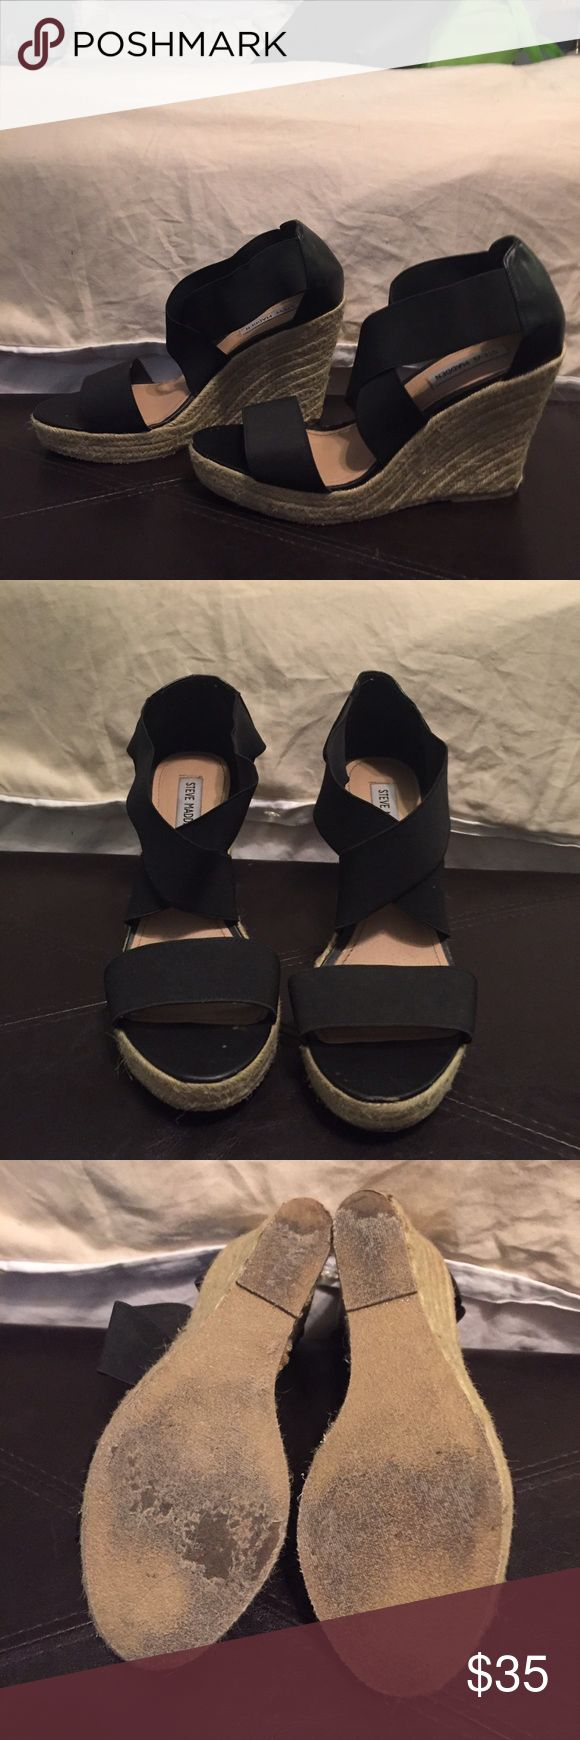 """Steve Madden Starla wedges Steve Madden  Starla strappy wedge heel espadrilles.  Size 10 Black bandage straps with neutral espadrille wedge base. Very good condition, only worn a handful of times. The """"bandage"""" straps are very elastic and VERY comfortable. I hate to see these go because they are so versatile, but I suffered an ankle injury and I am limited to flats for the moment.  I also have these same Starla wedges with cream colored straps and I will be posting them shortly. Steve Madden…"""